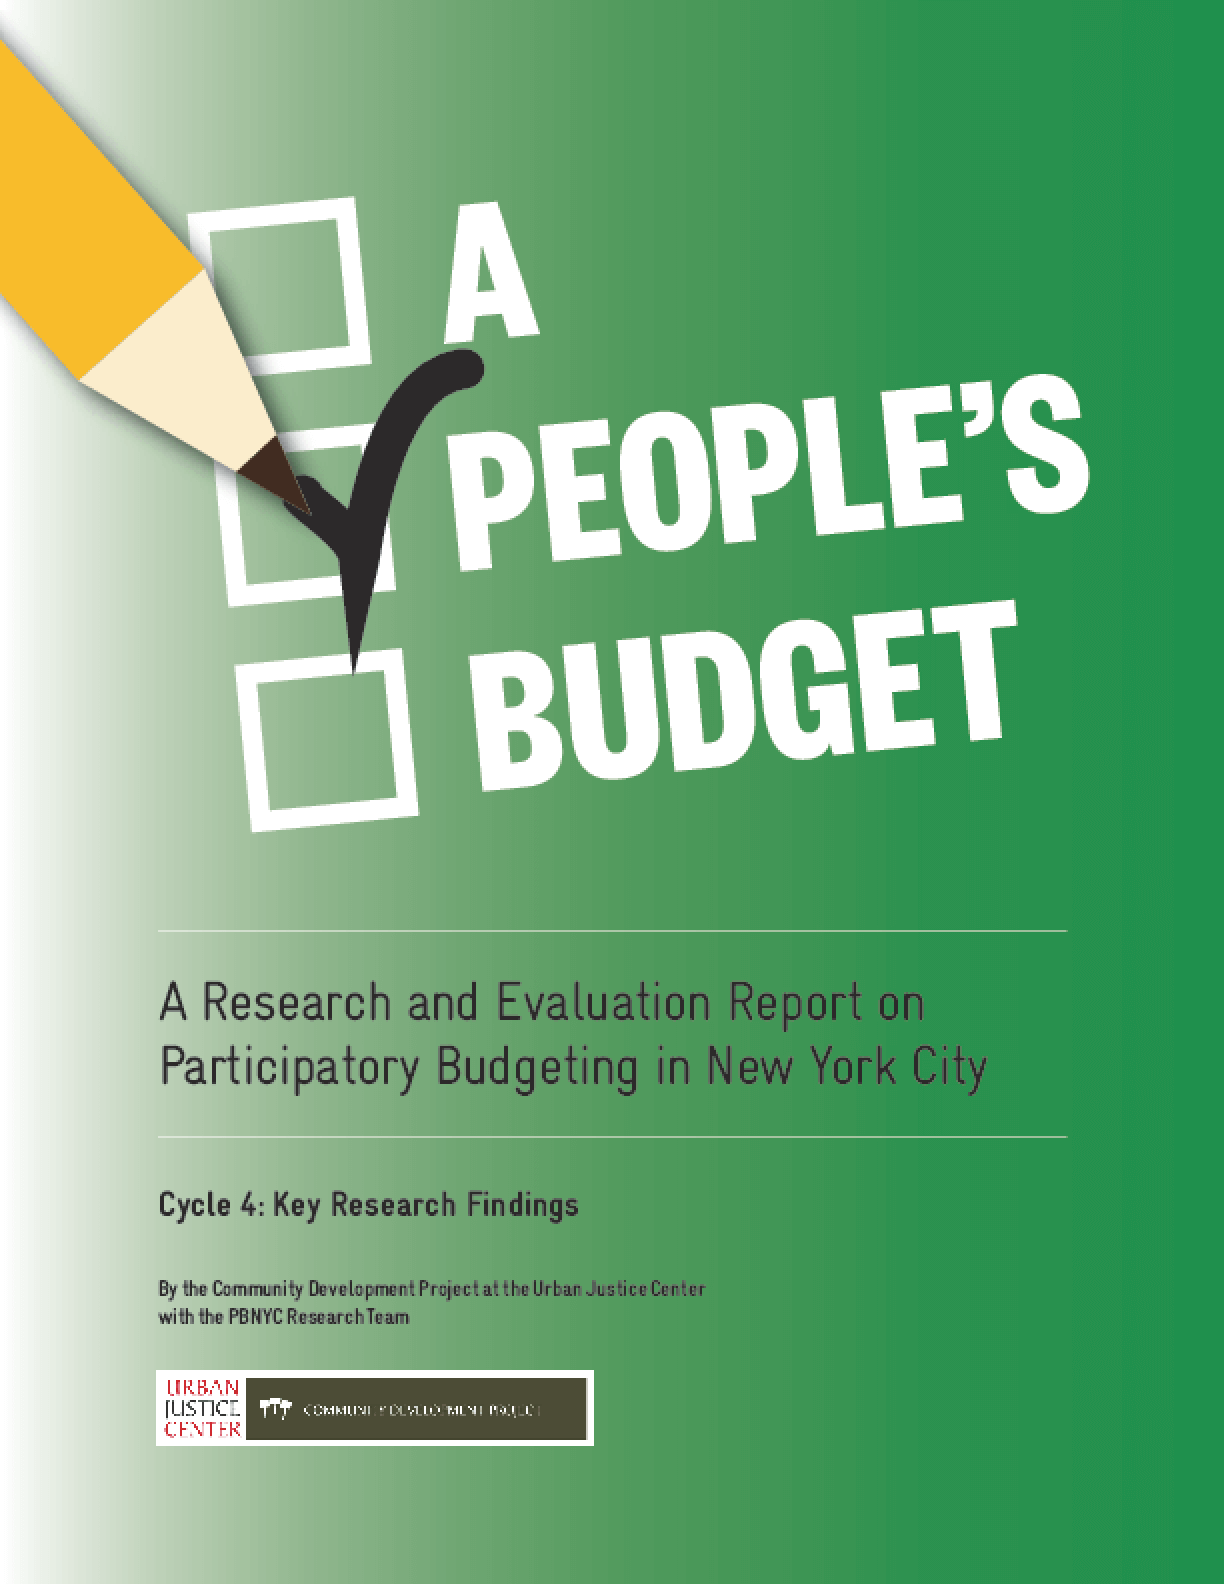 A People's Budget: A Research and Evaluation Report on Participatory Budgeting in New York City